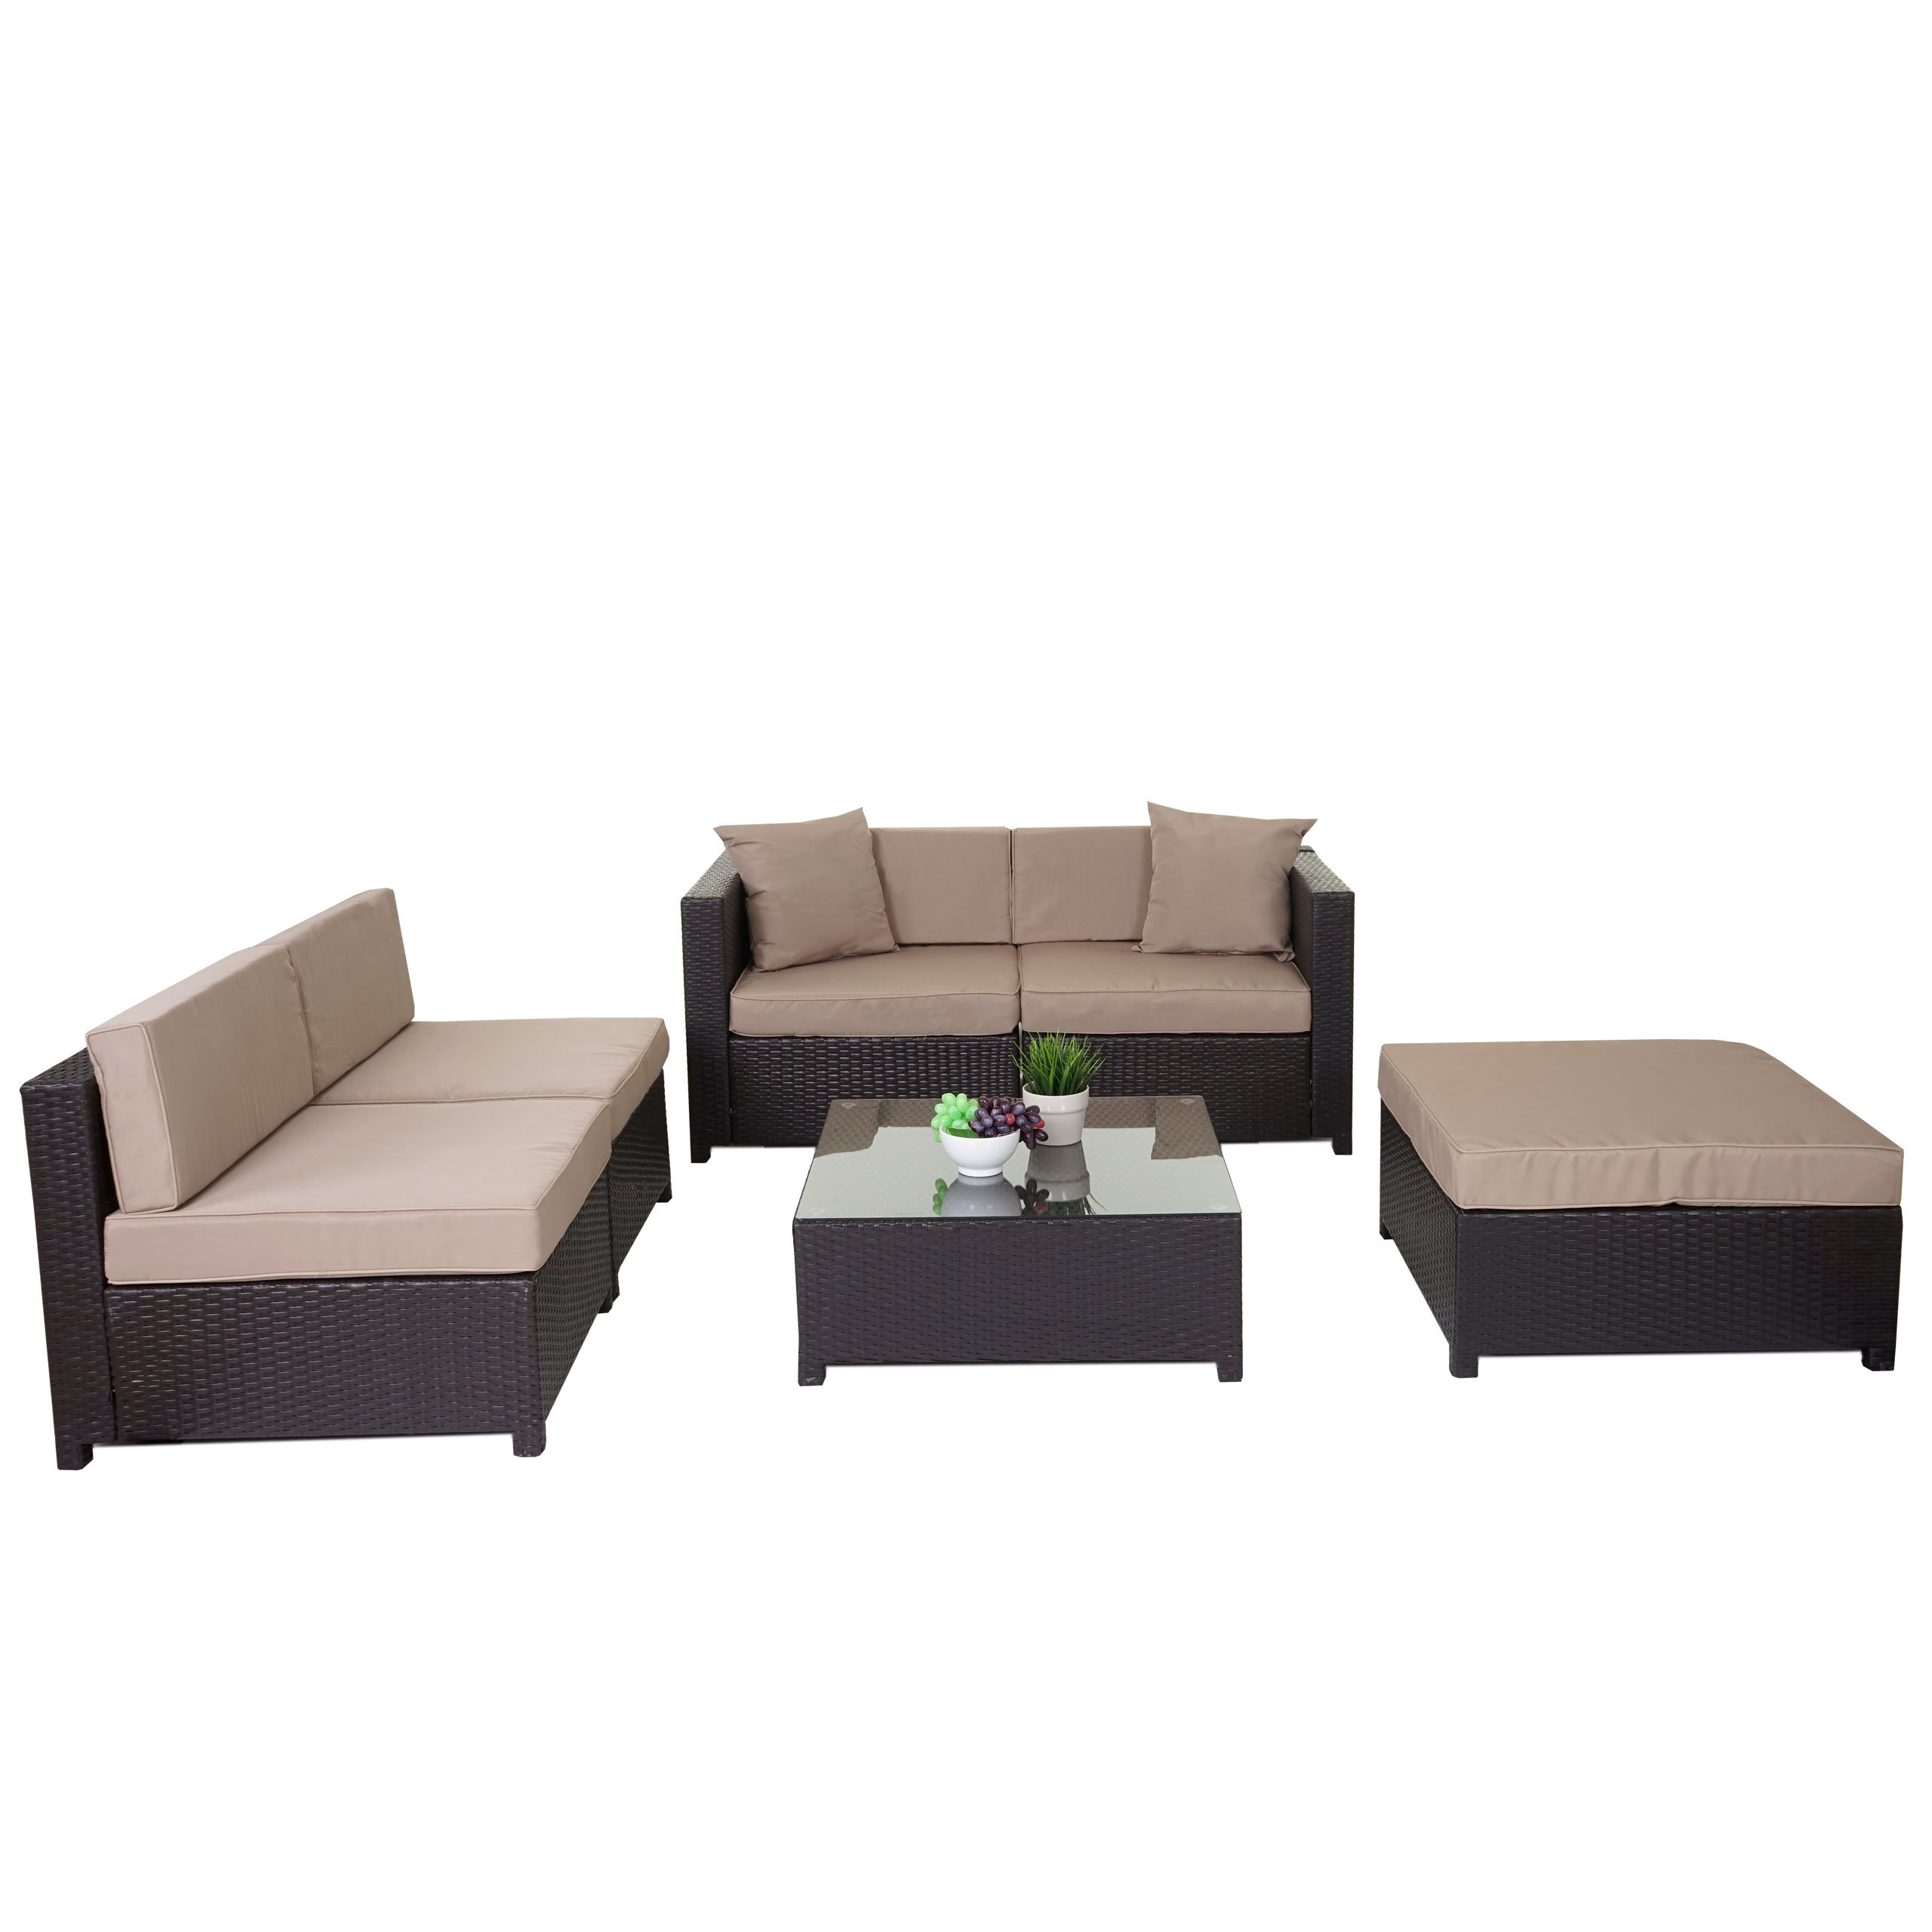 poly rattan garnitur gela sitzgruppe lounge set alu braun kissen beige ebay. Black Bedroom Furniture Sets. Home Design Ideas